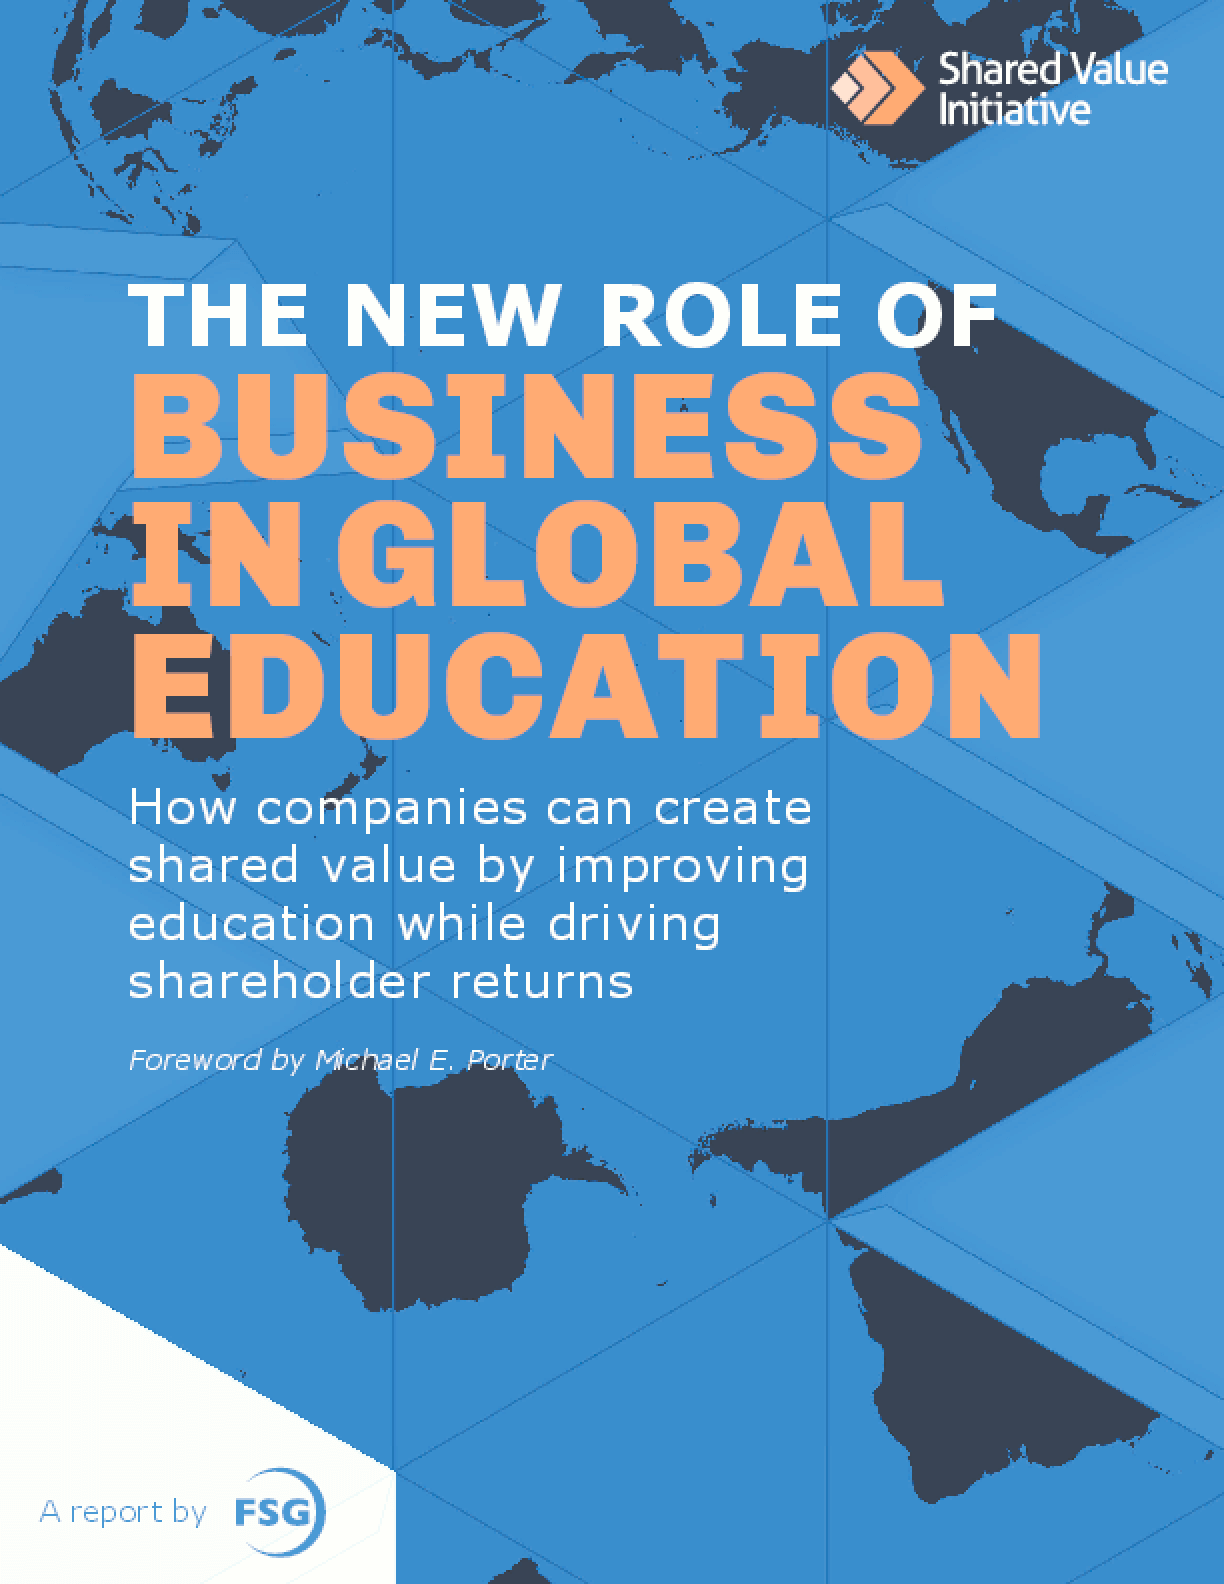 The New Role of Business in Global Education: How Companies Can Create Shared Value by Improving Education While Driving Shareholder Returns